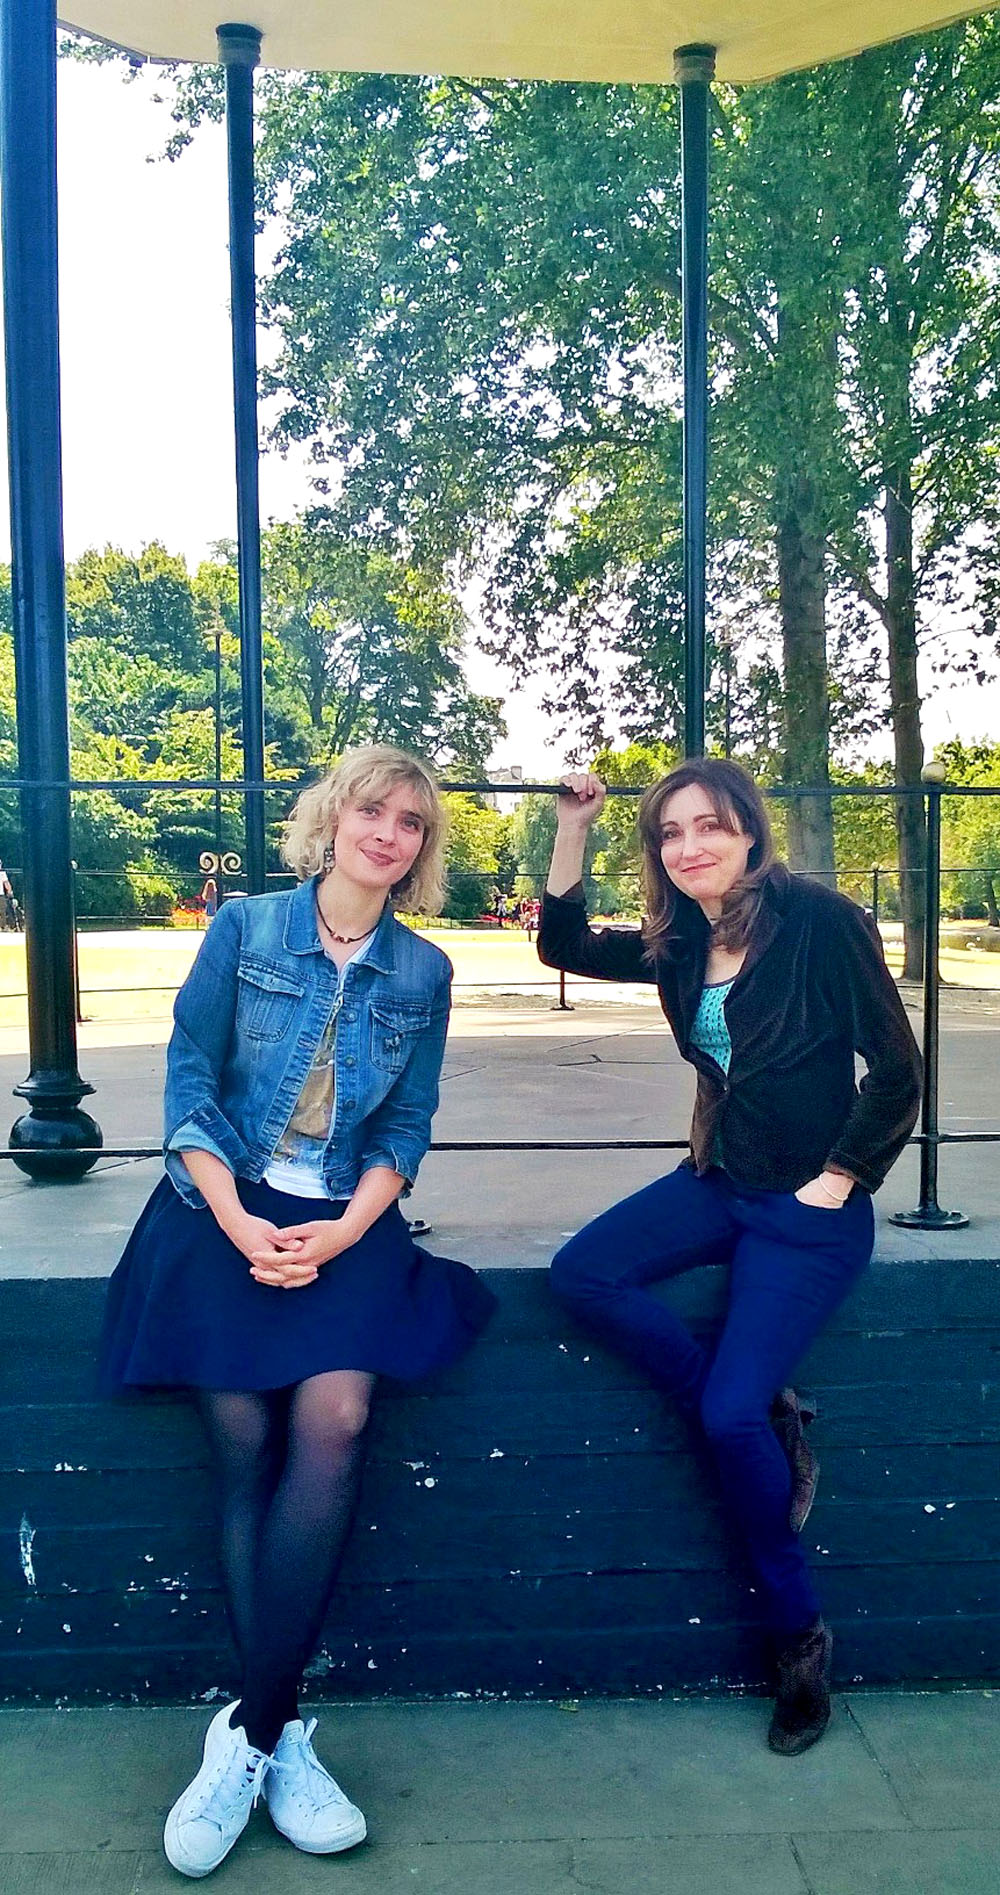 Kate Mossman and Viv Albertine in Girl in a Band